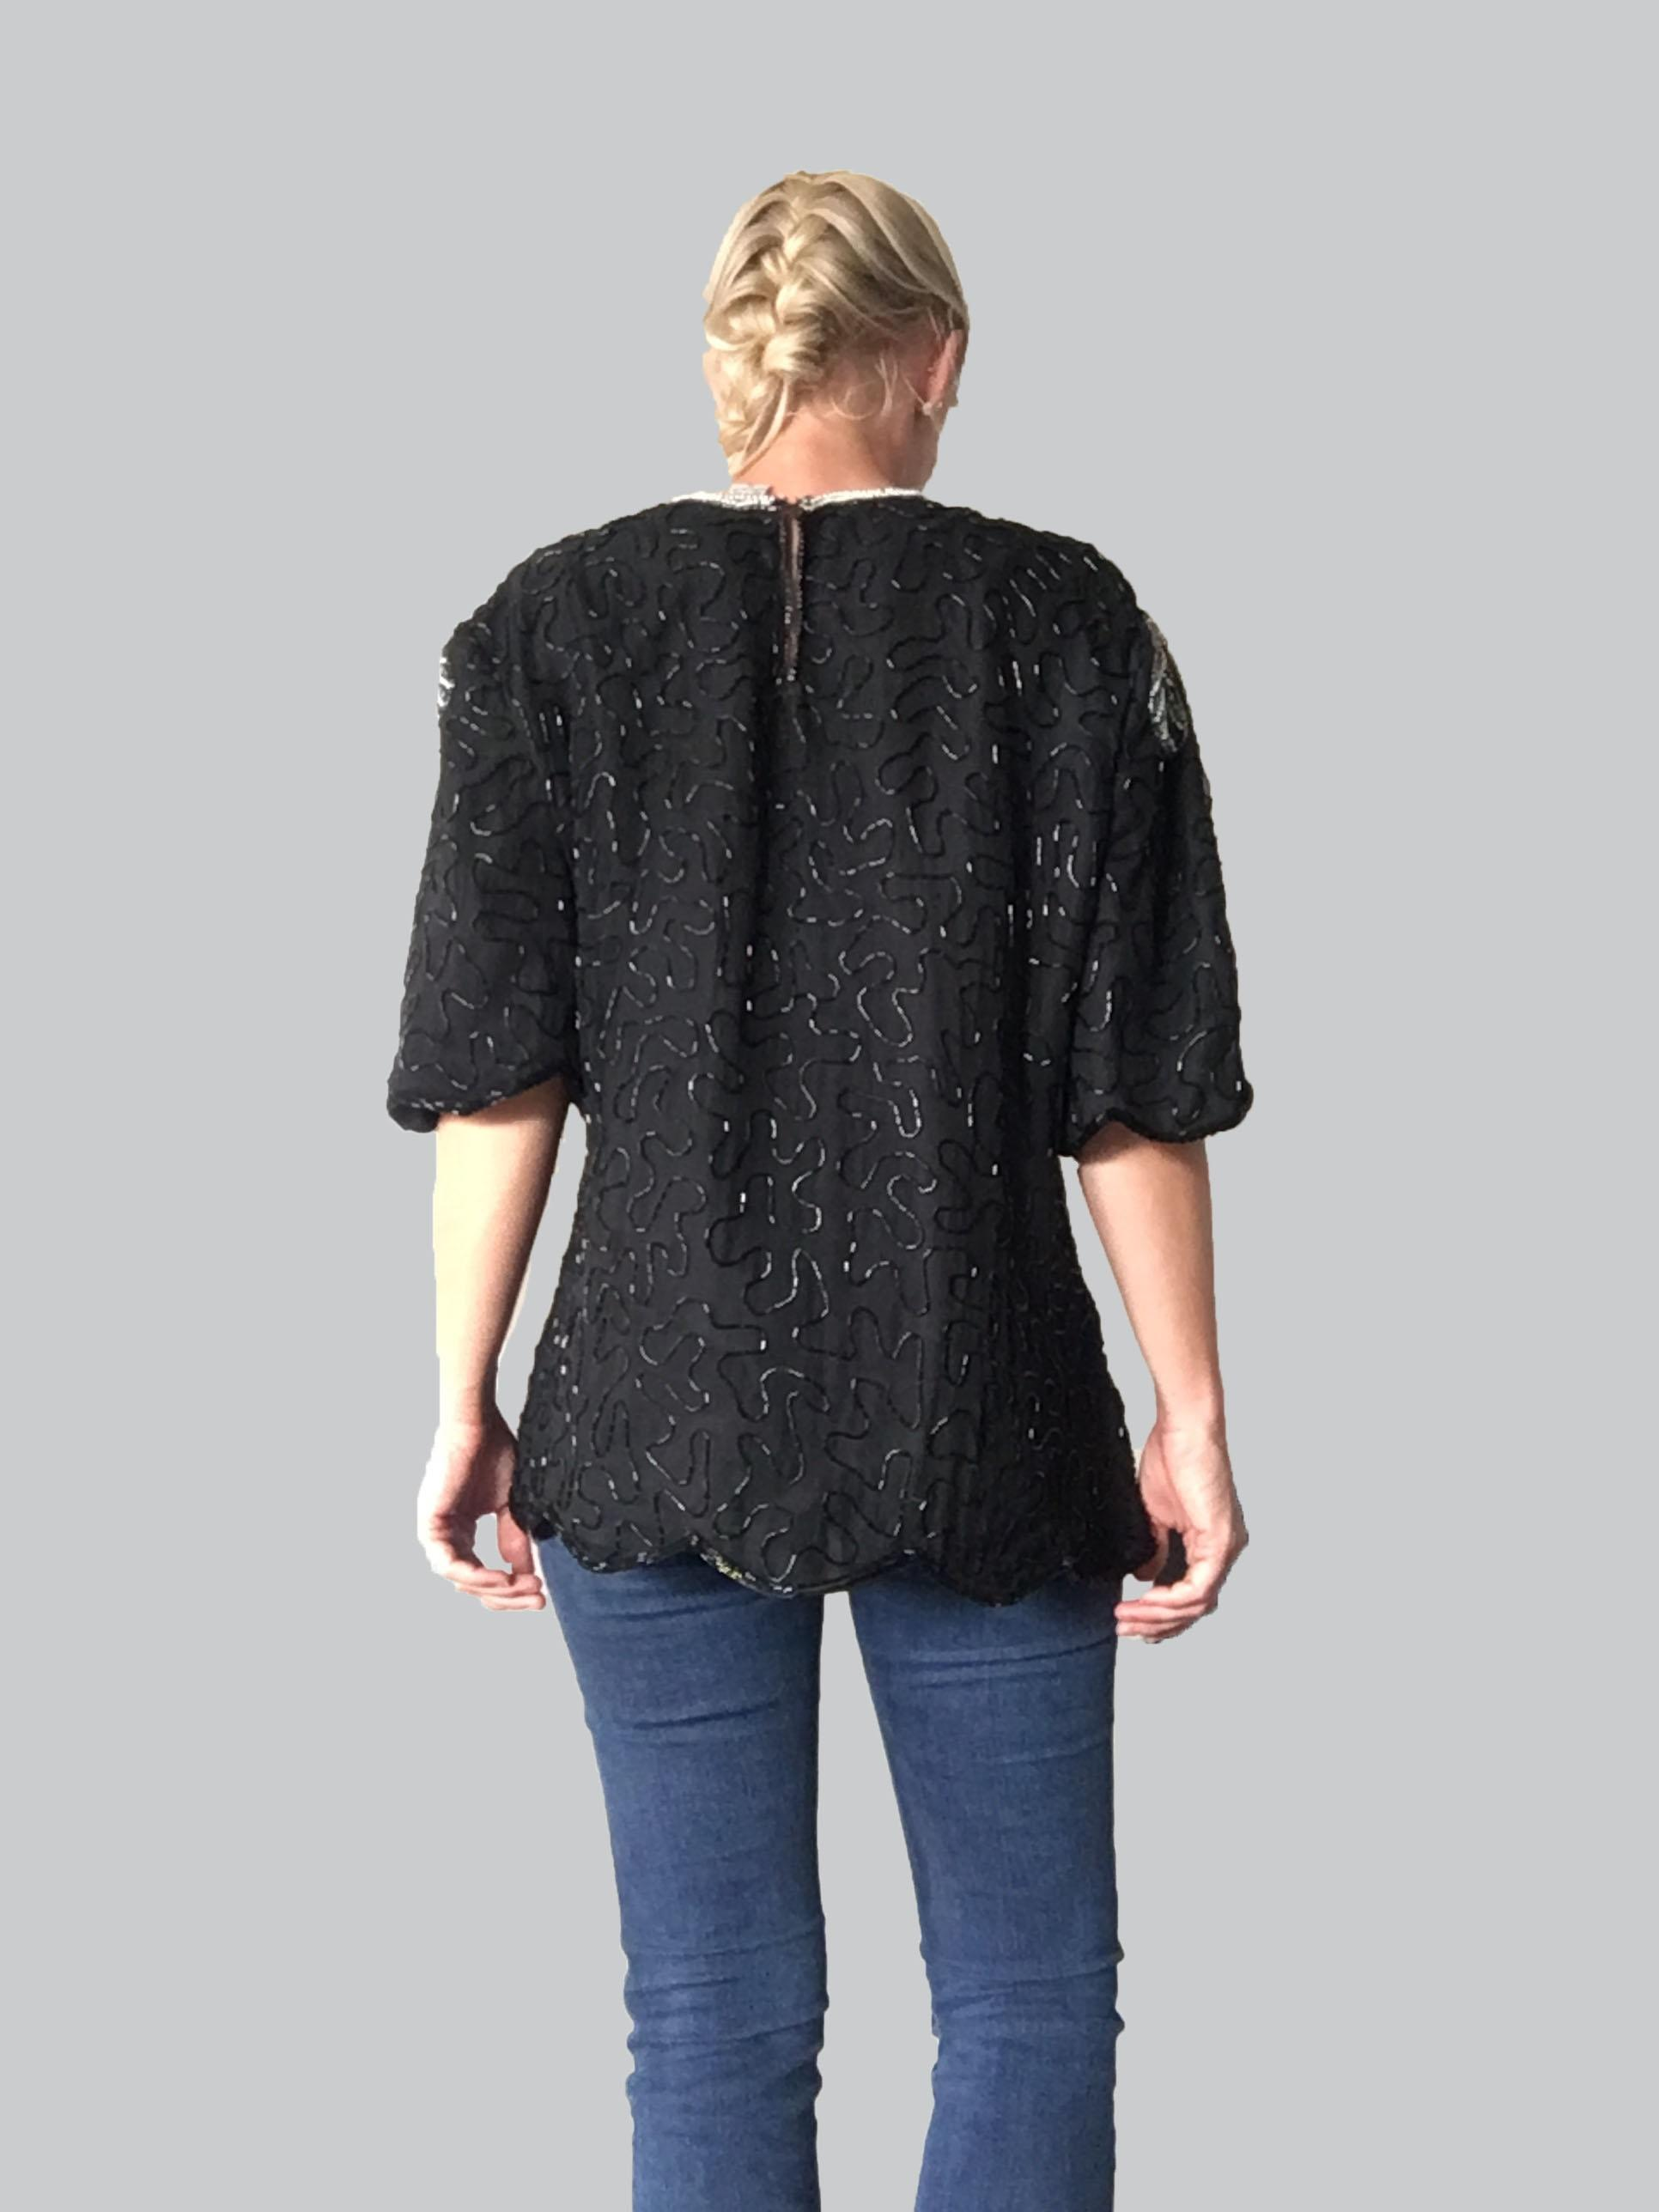 New Years Eve Tops